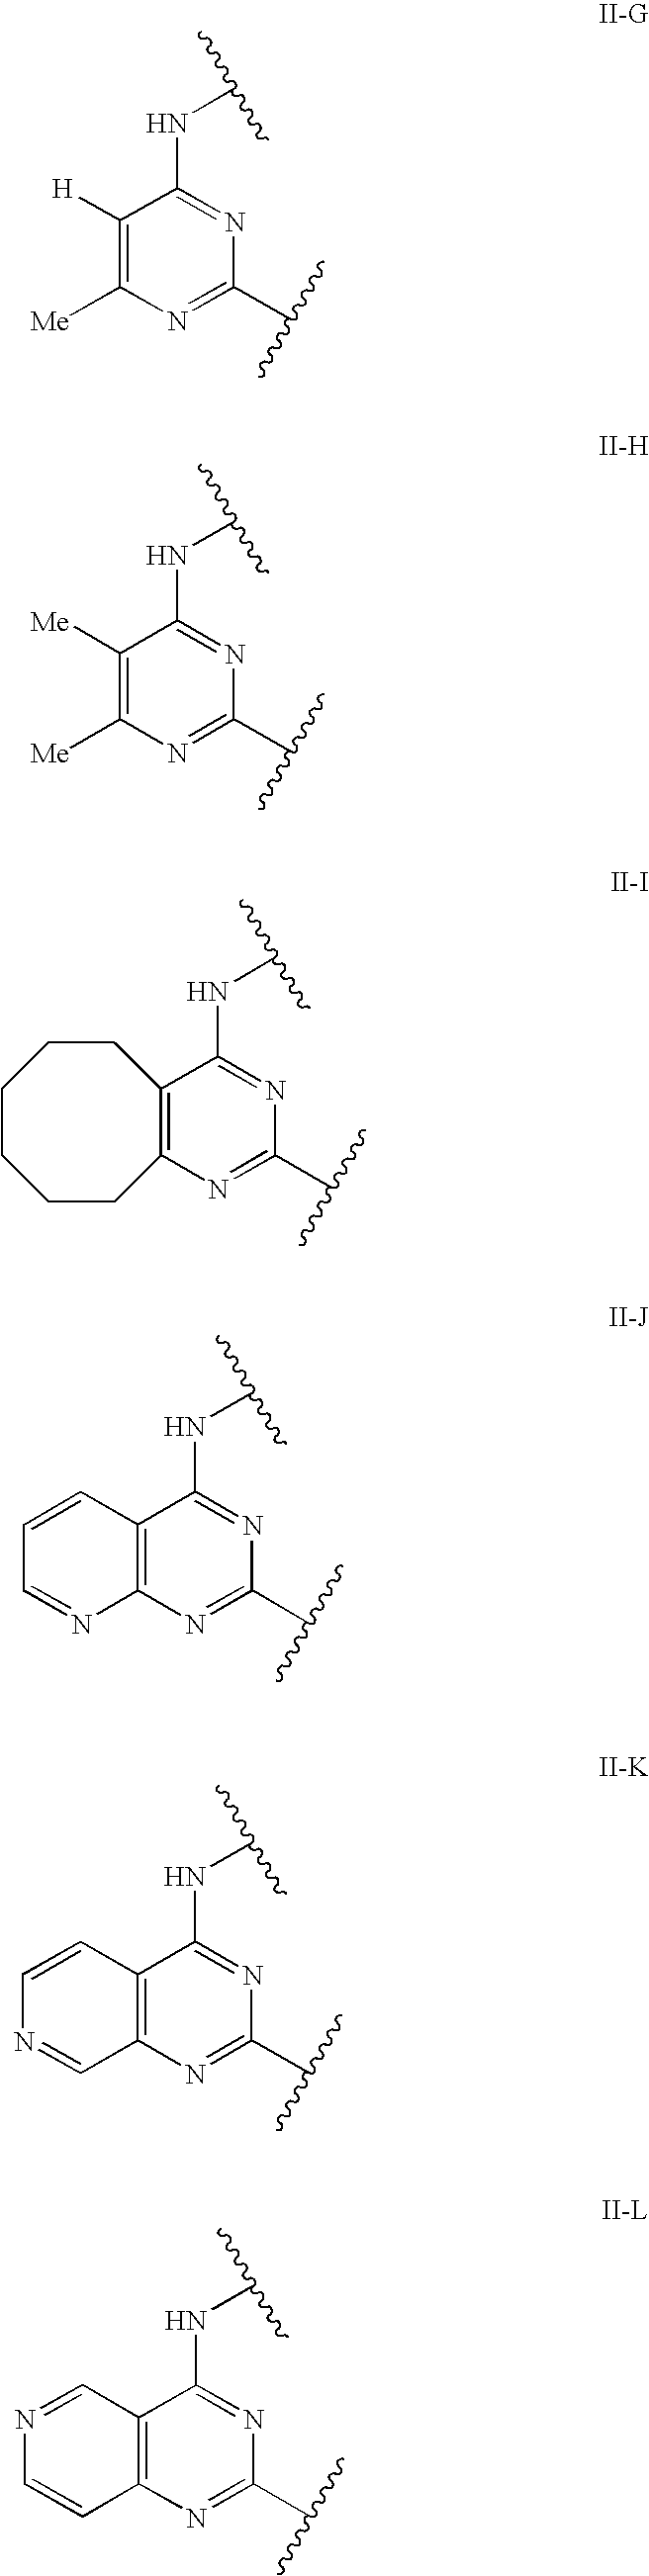 Us7098330b2 Pyrazolylamine Substituted Quinazoline Compounds Wiring Diagram Bolens 1476 Figure Us07098330 20060829 C00014